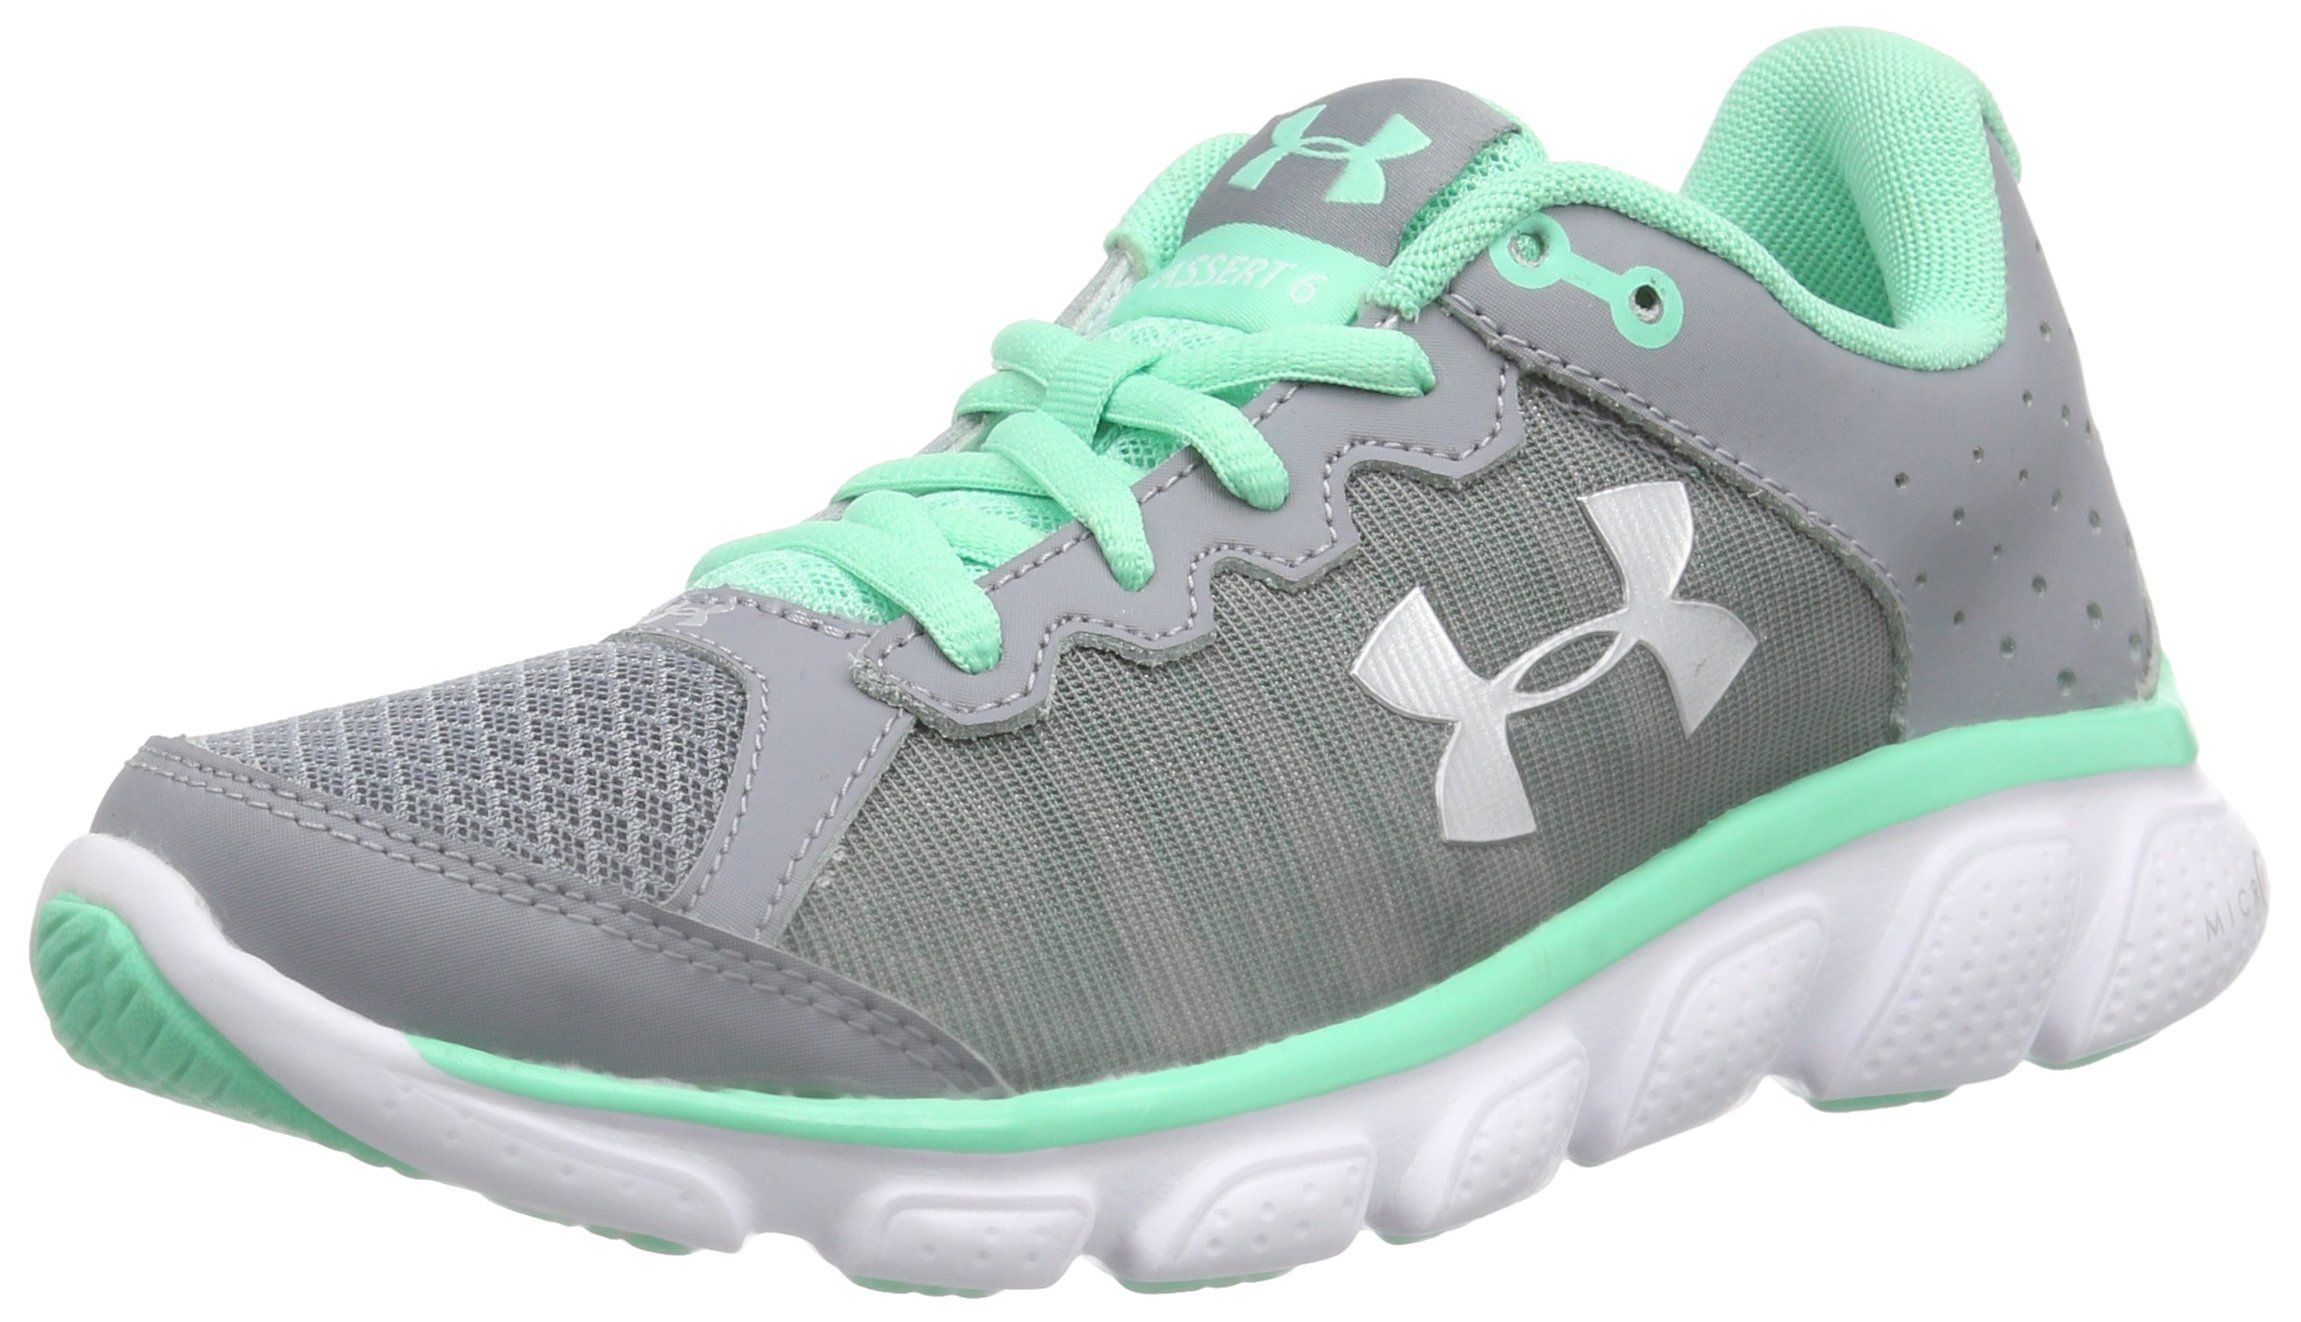 Under Armour New Women's Micro G Assert 6 Running Shoe Steel/Green 5.5 by Under Armour